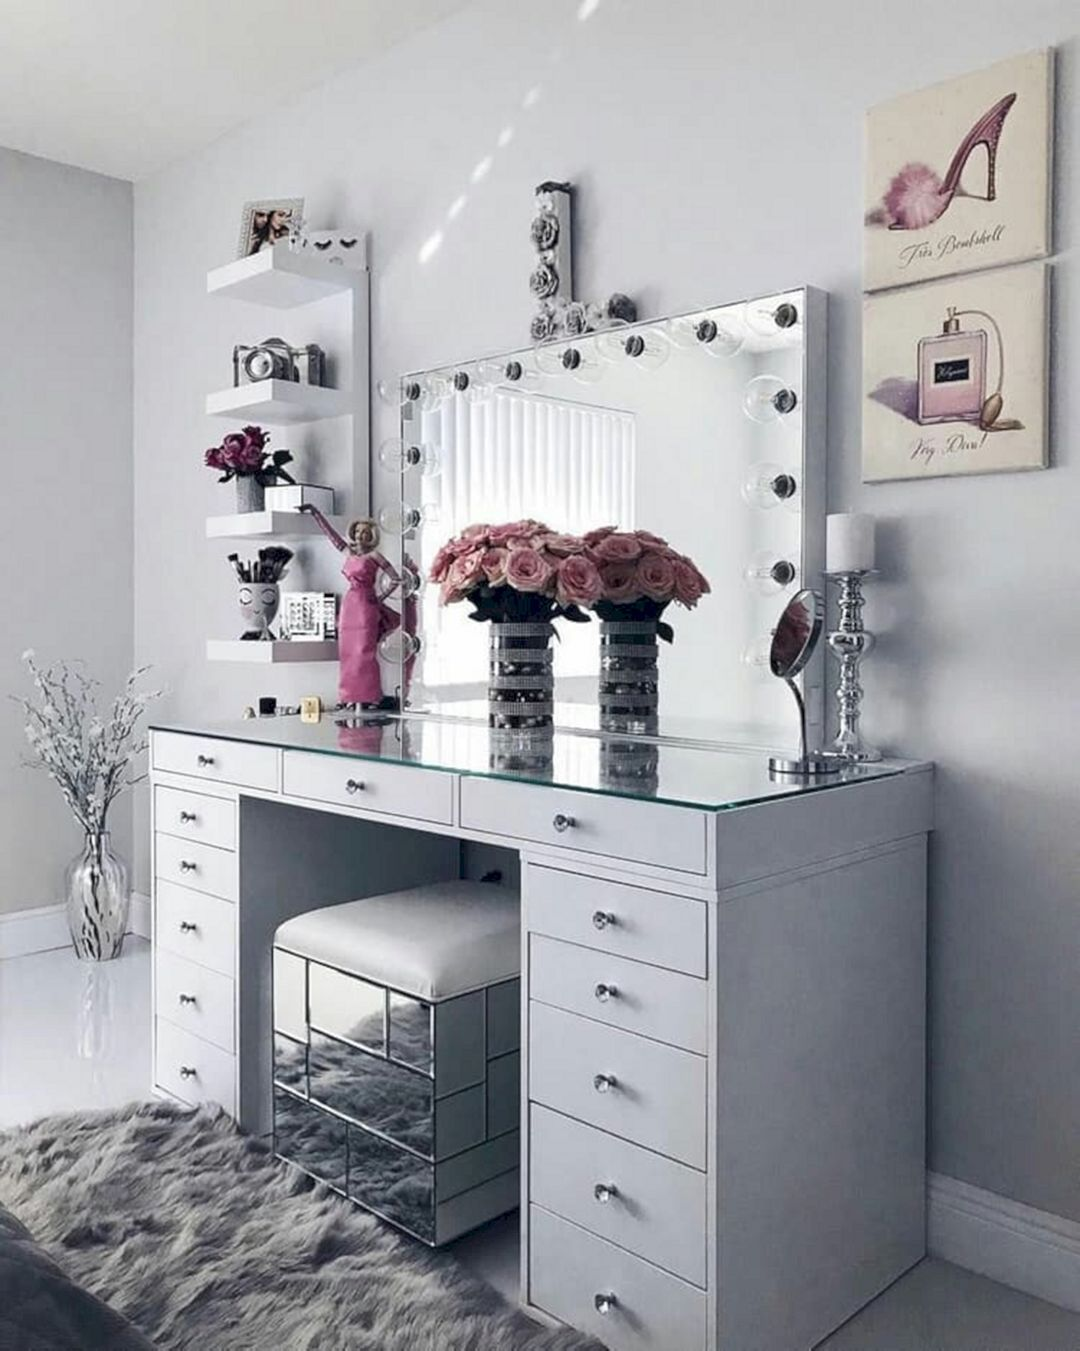 15 Impressive Diy Makeup Vanity Decoration Ideas That You Will Love It In 2020 With Images Vanity Decor Bedroom Vanity Glam Room